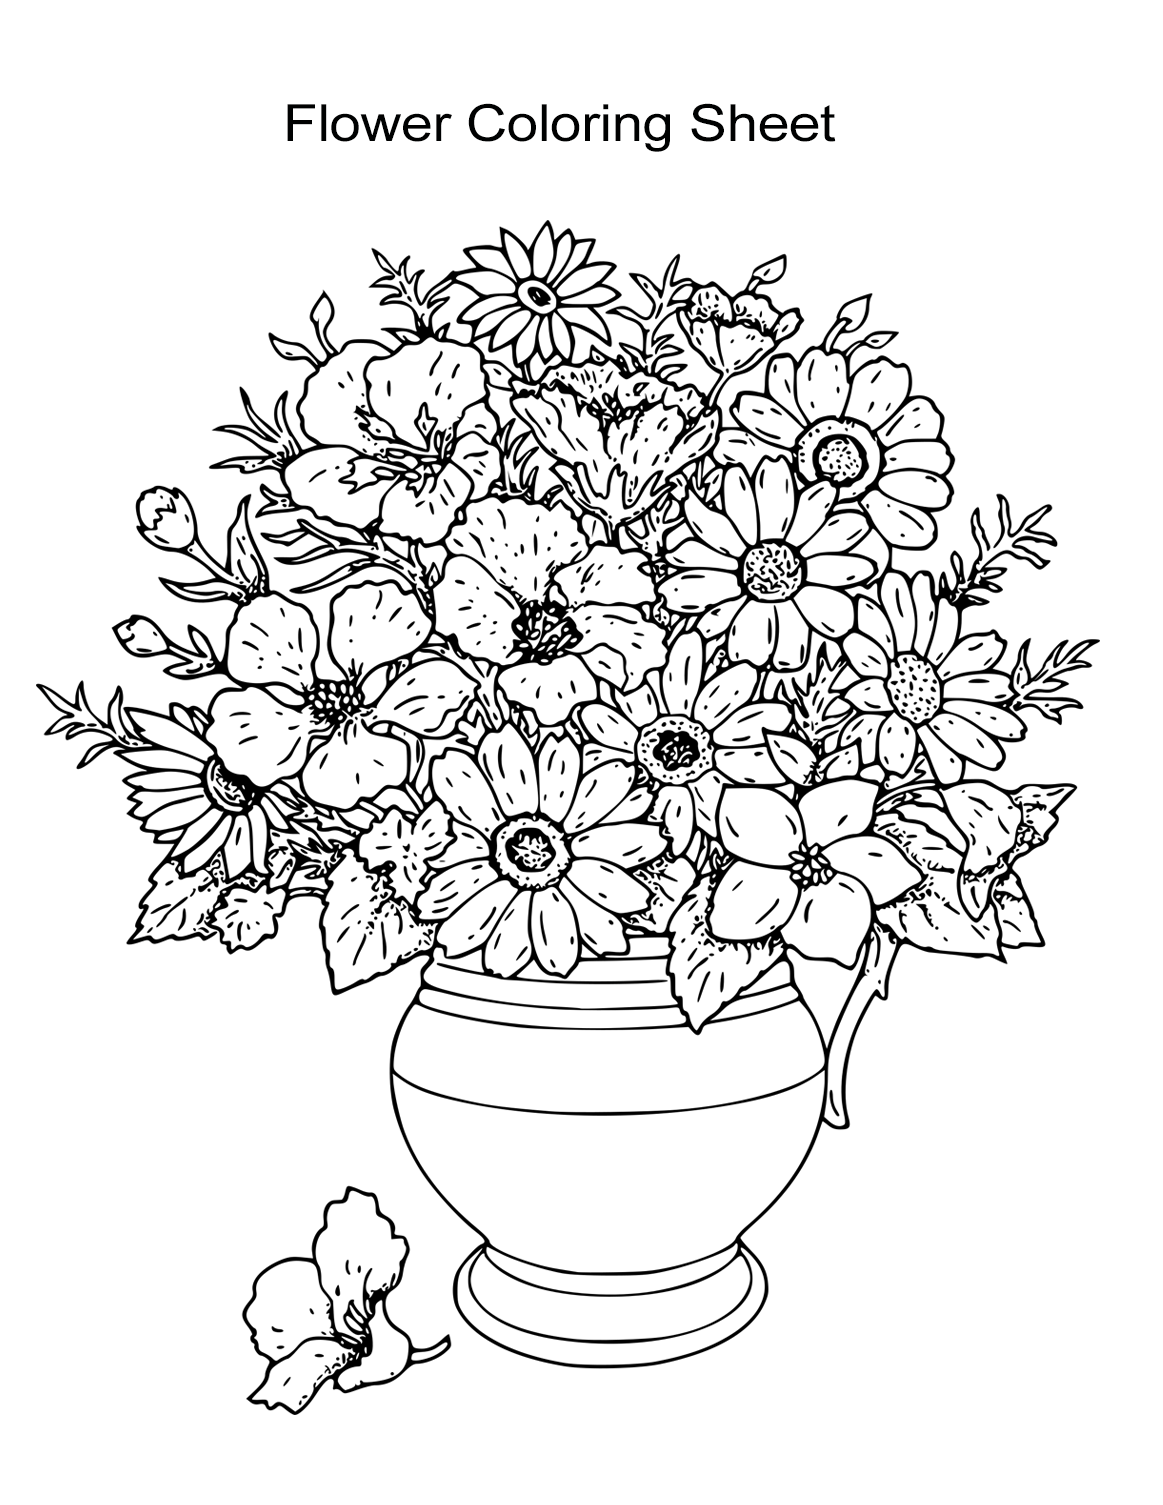 coloring pages of flowers 10 flower coloring sheets for girls and boys all esl of flowers coloring pages